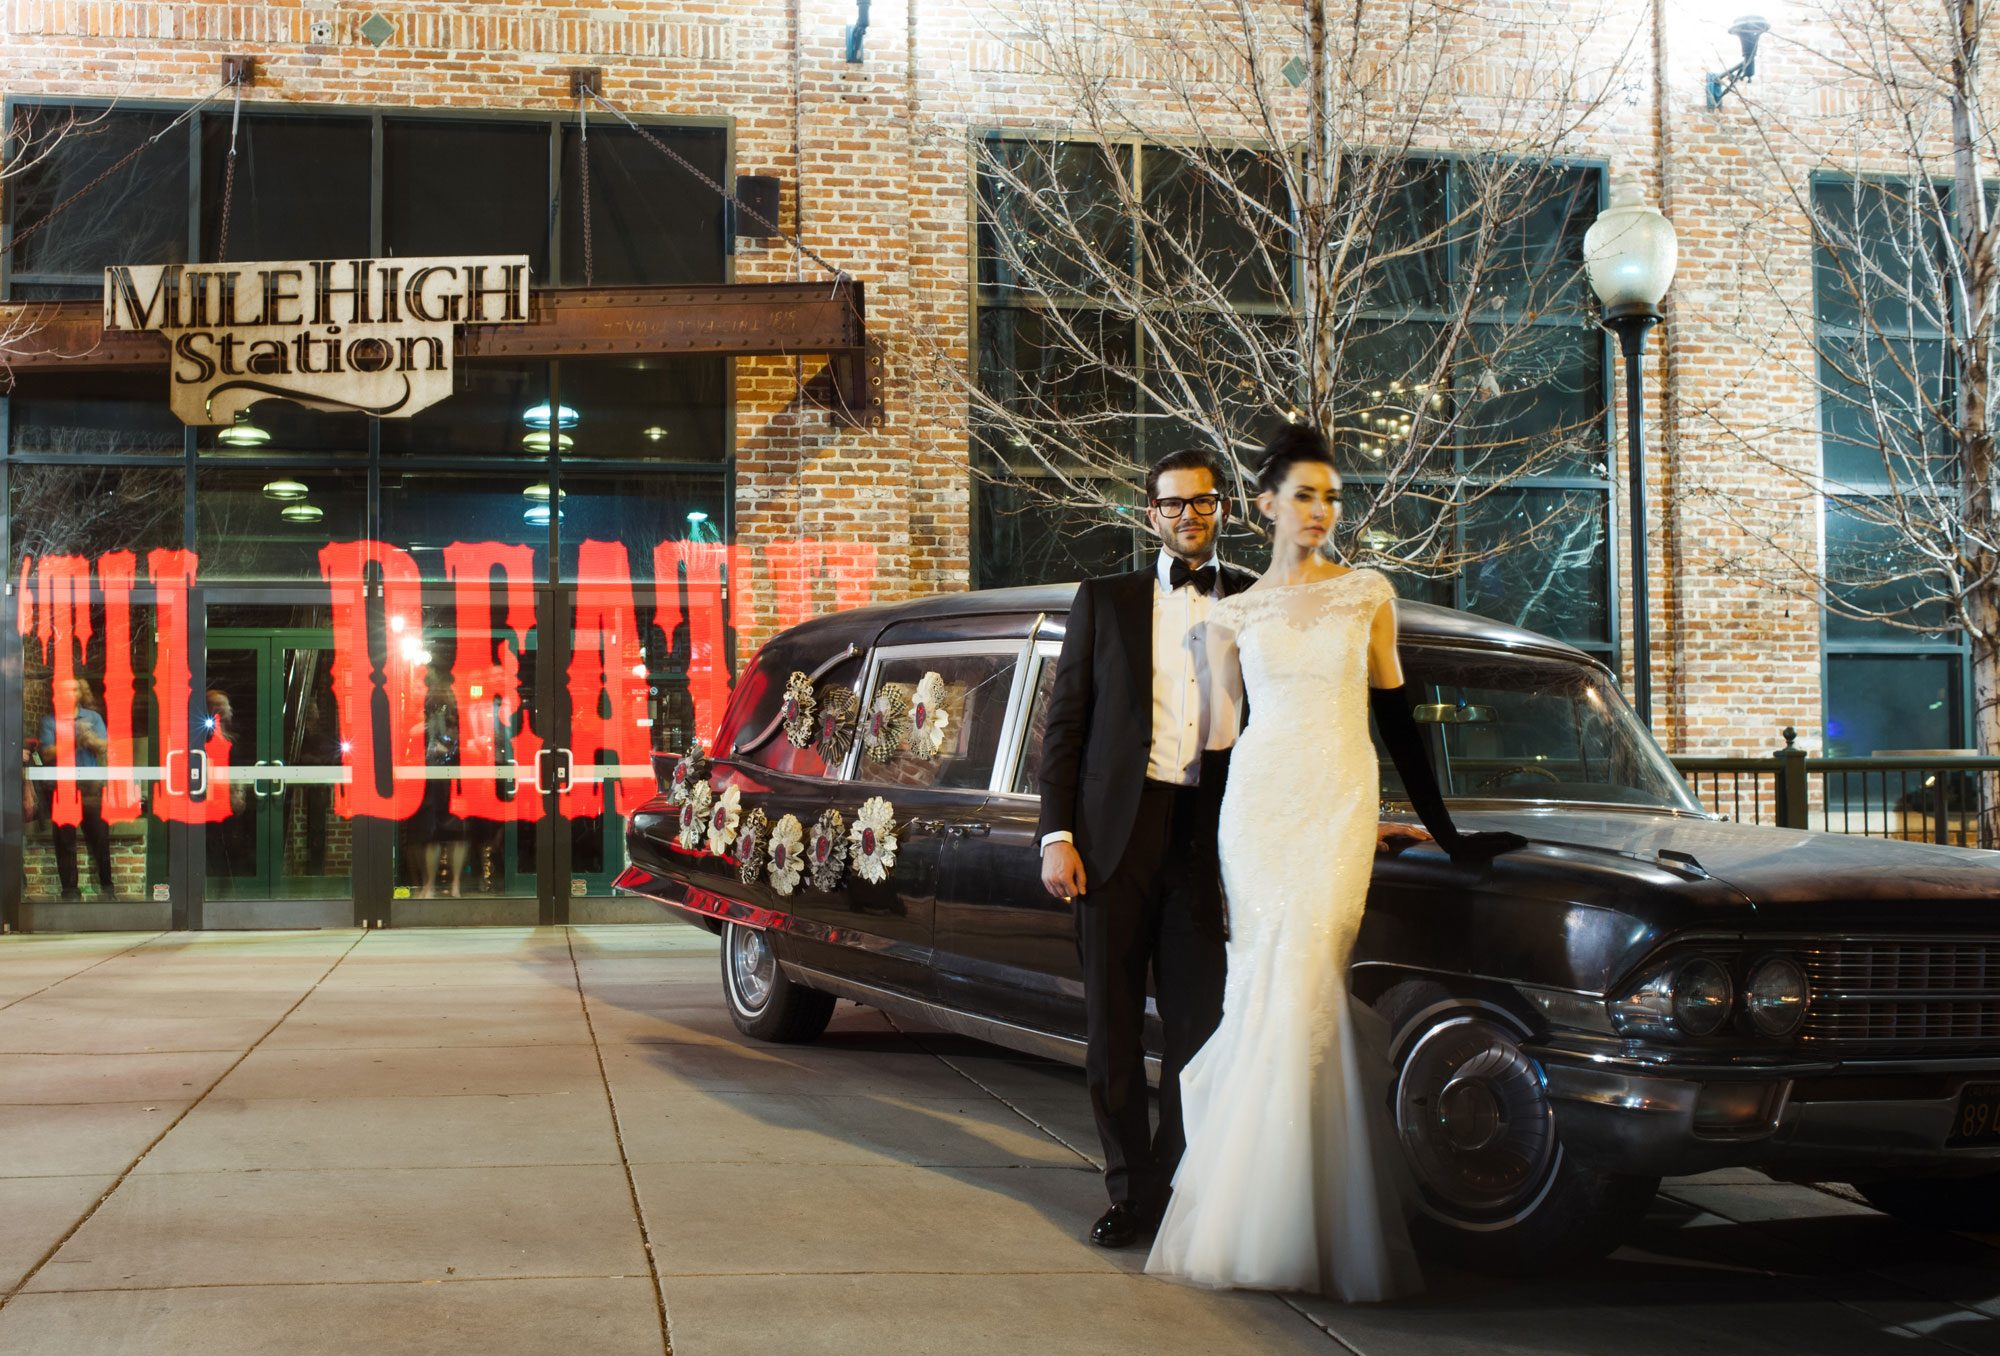 Drive off into the sunset in a vintage hearse